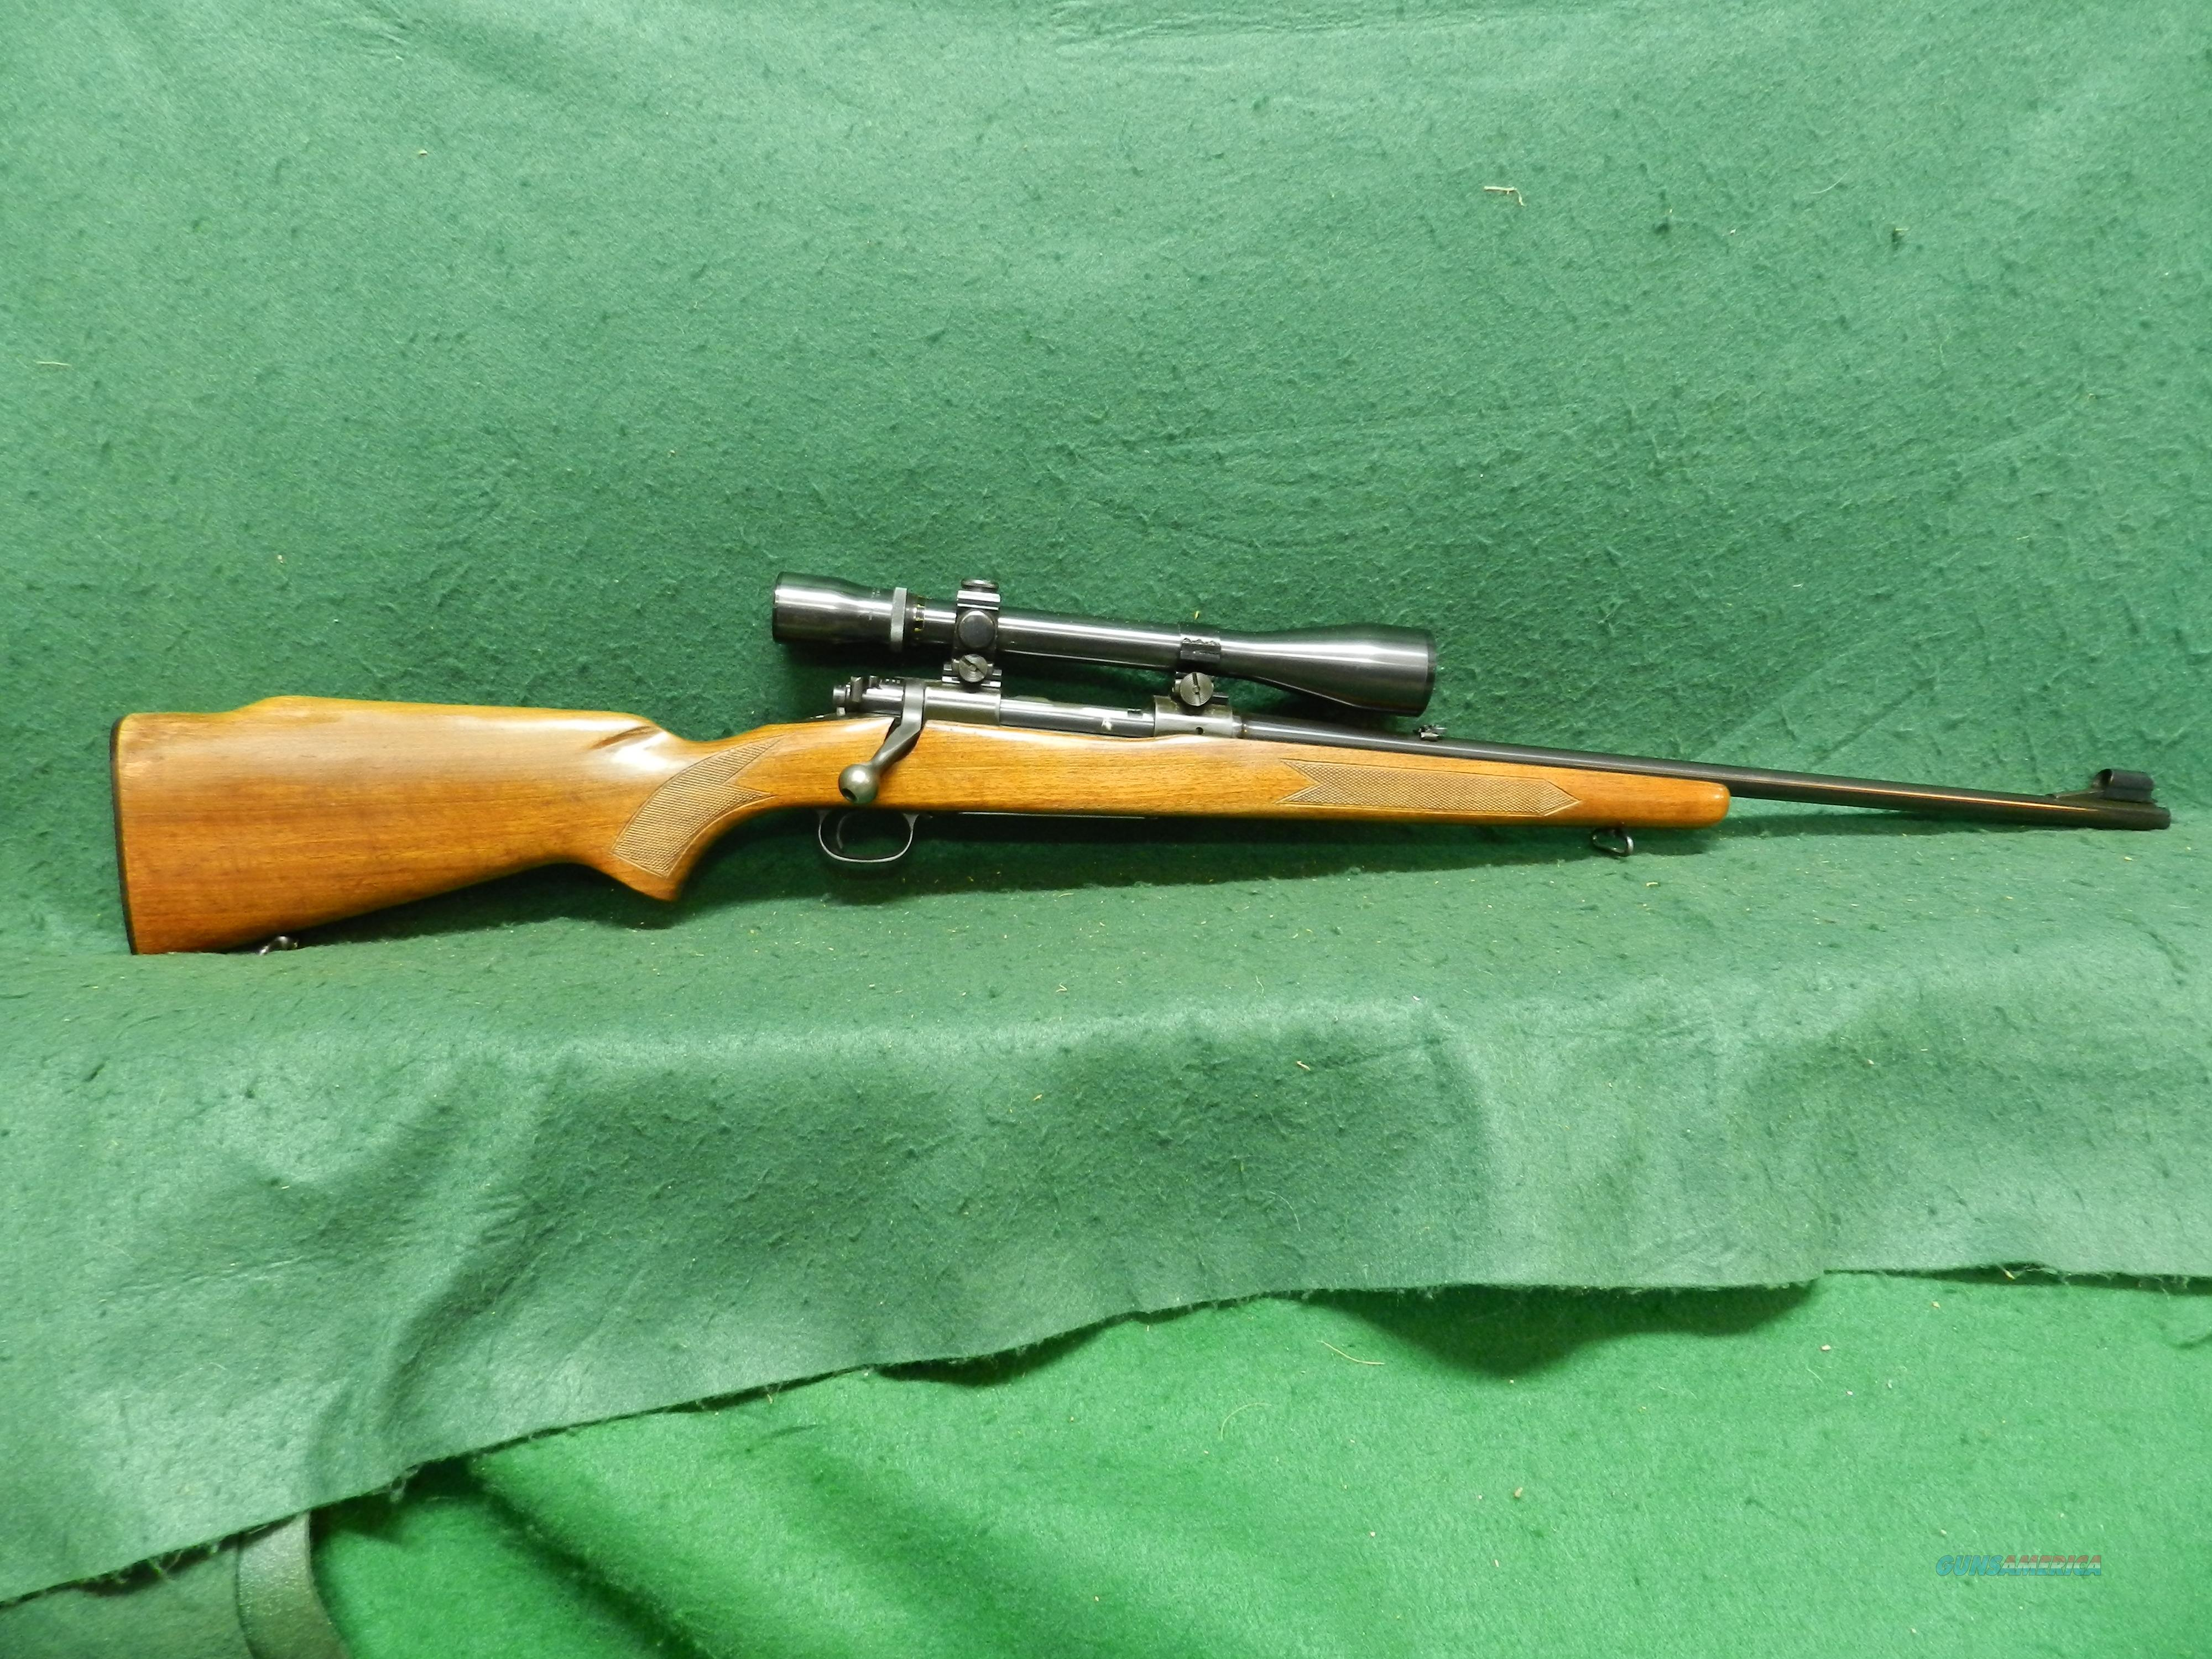 Winchester Pre 64 Model 70 Featherweight in 270 Win  Guns > Rifles > Winchester Rifles - Modern Bolt/Auto/Single > Model 70 > Pre-64